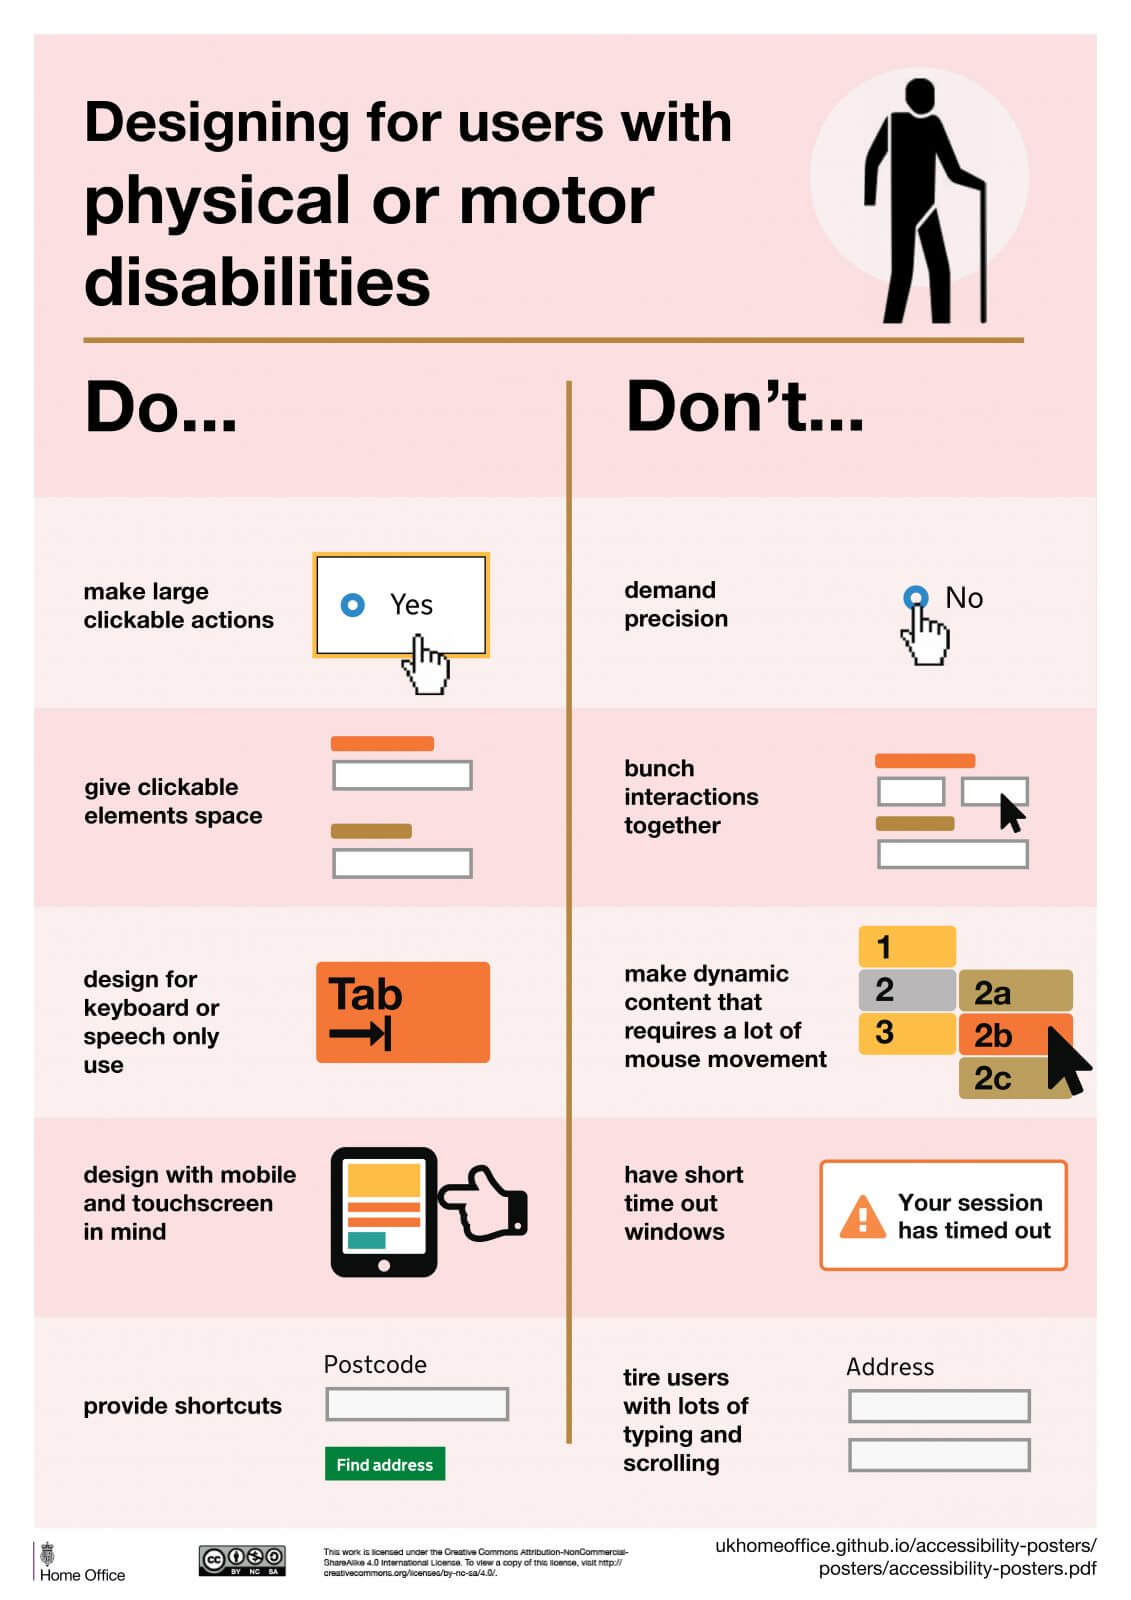 GOV.UK Designing For Users With Physical Or Motor Disabilities